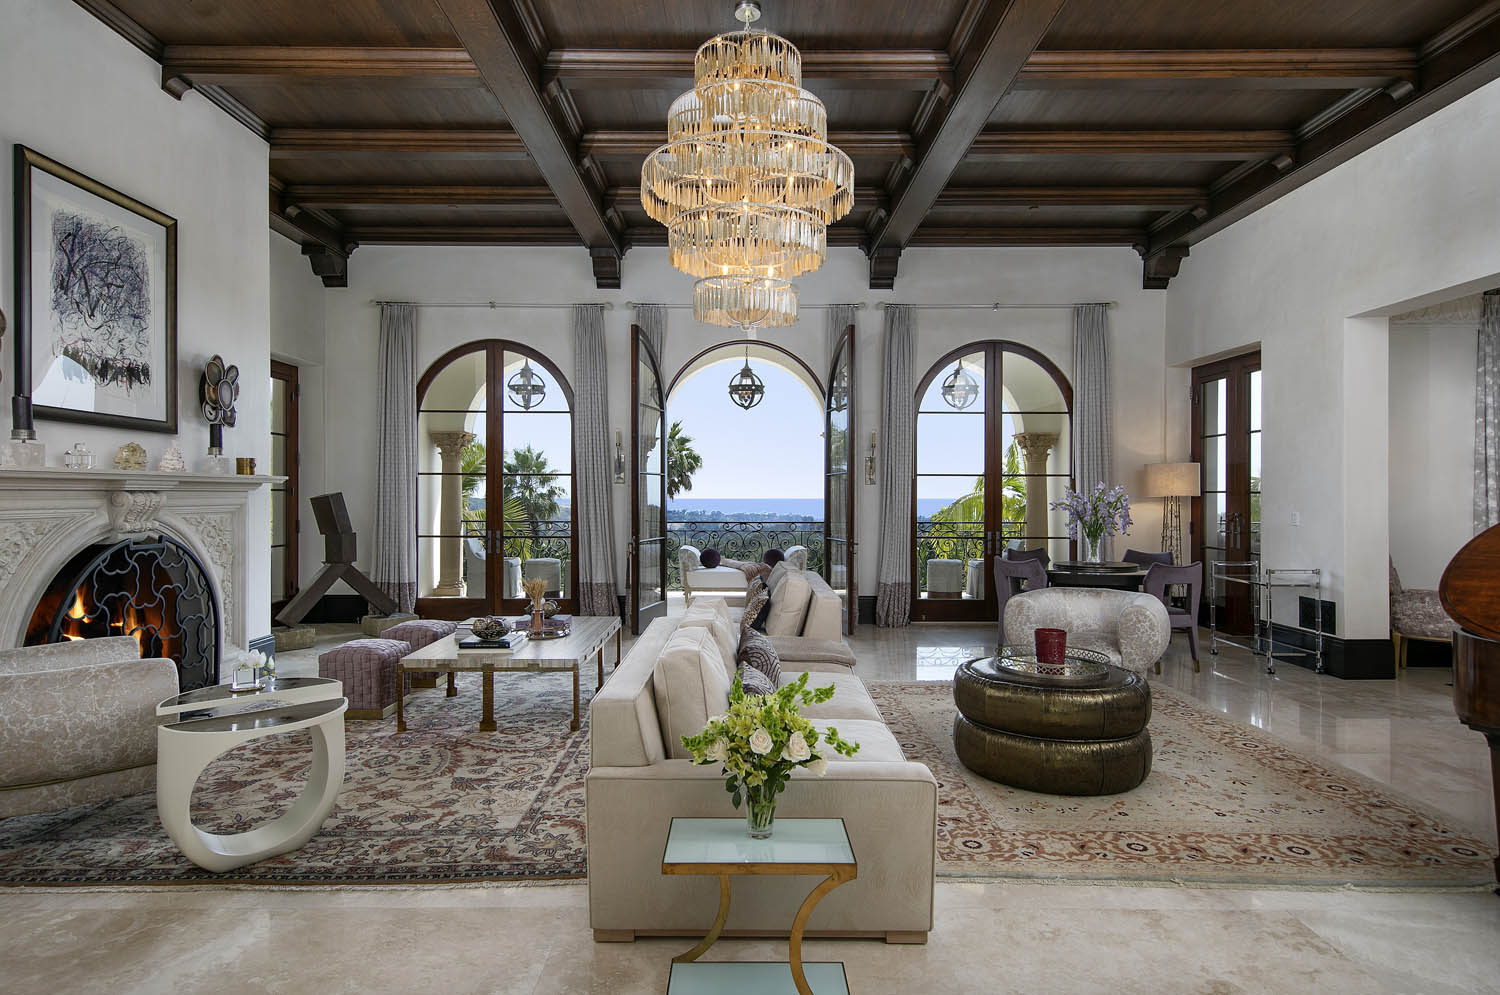 formal living room with fireplace, beamed ceilings and arched windows centered on the ocean